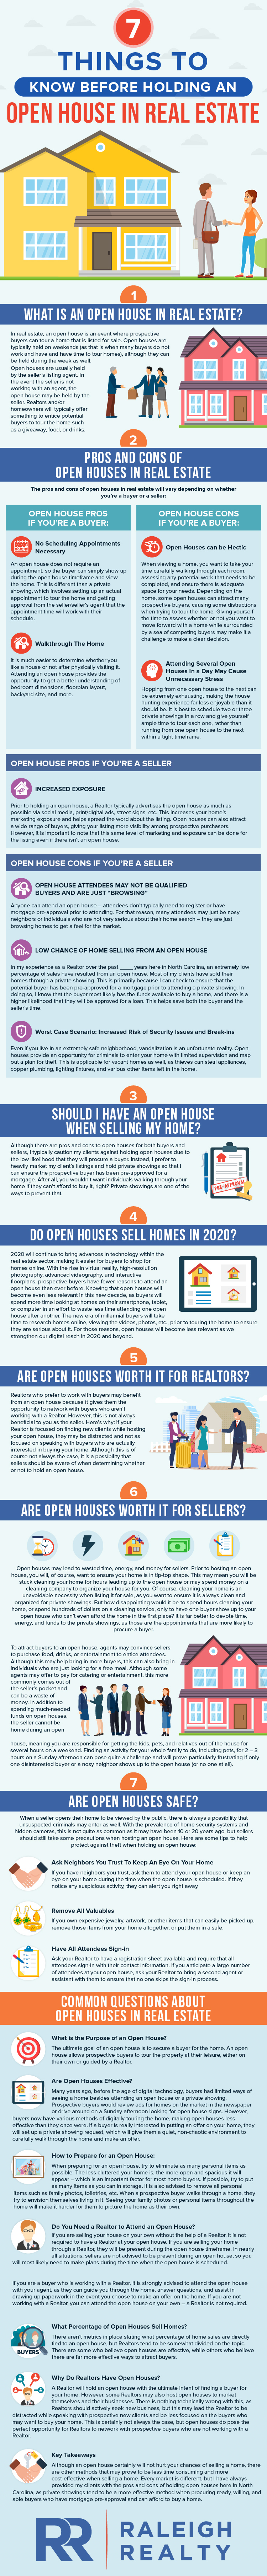 Open House in Real Estate Pros and Cons